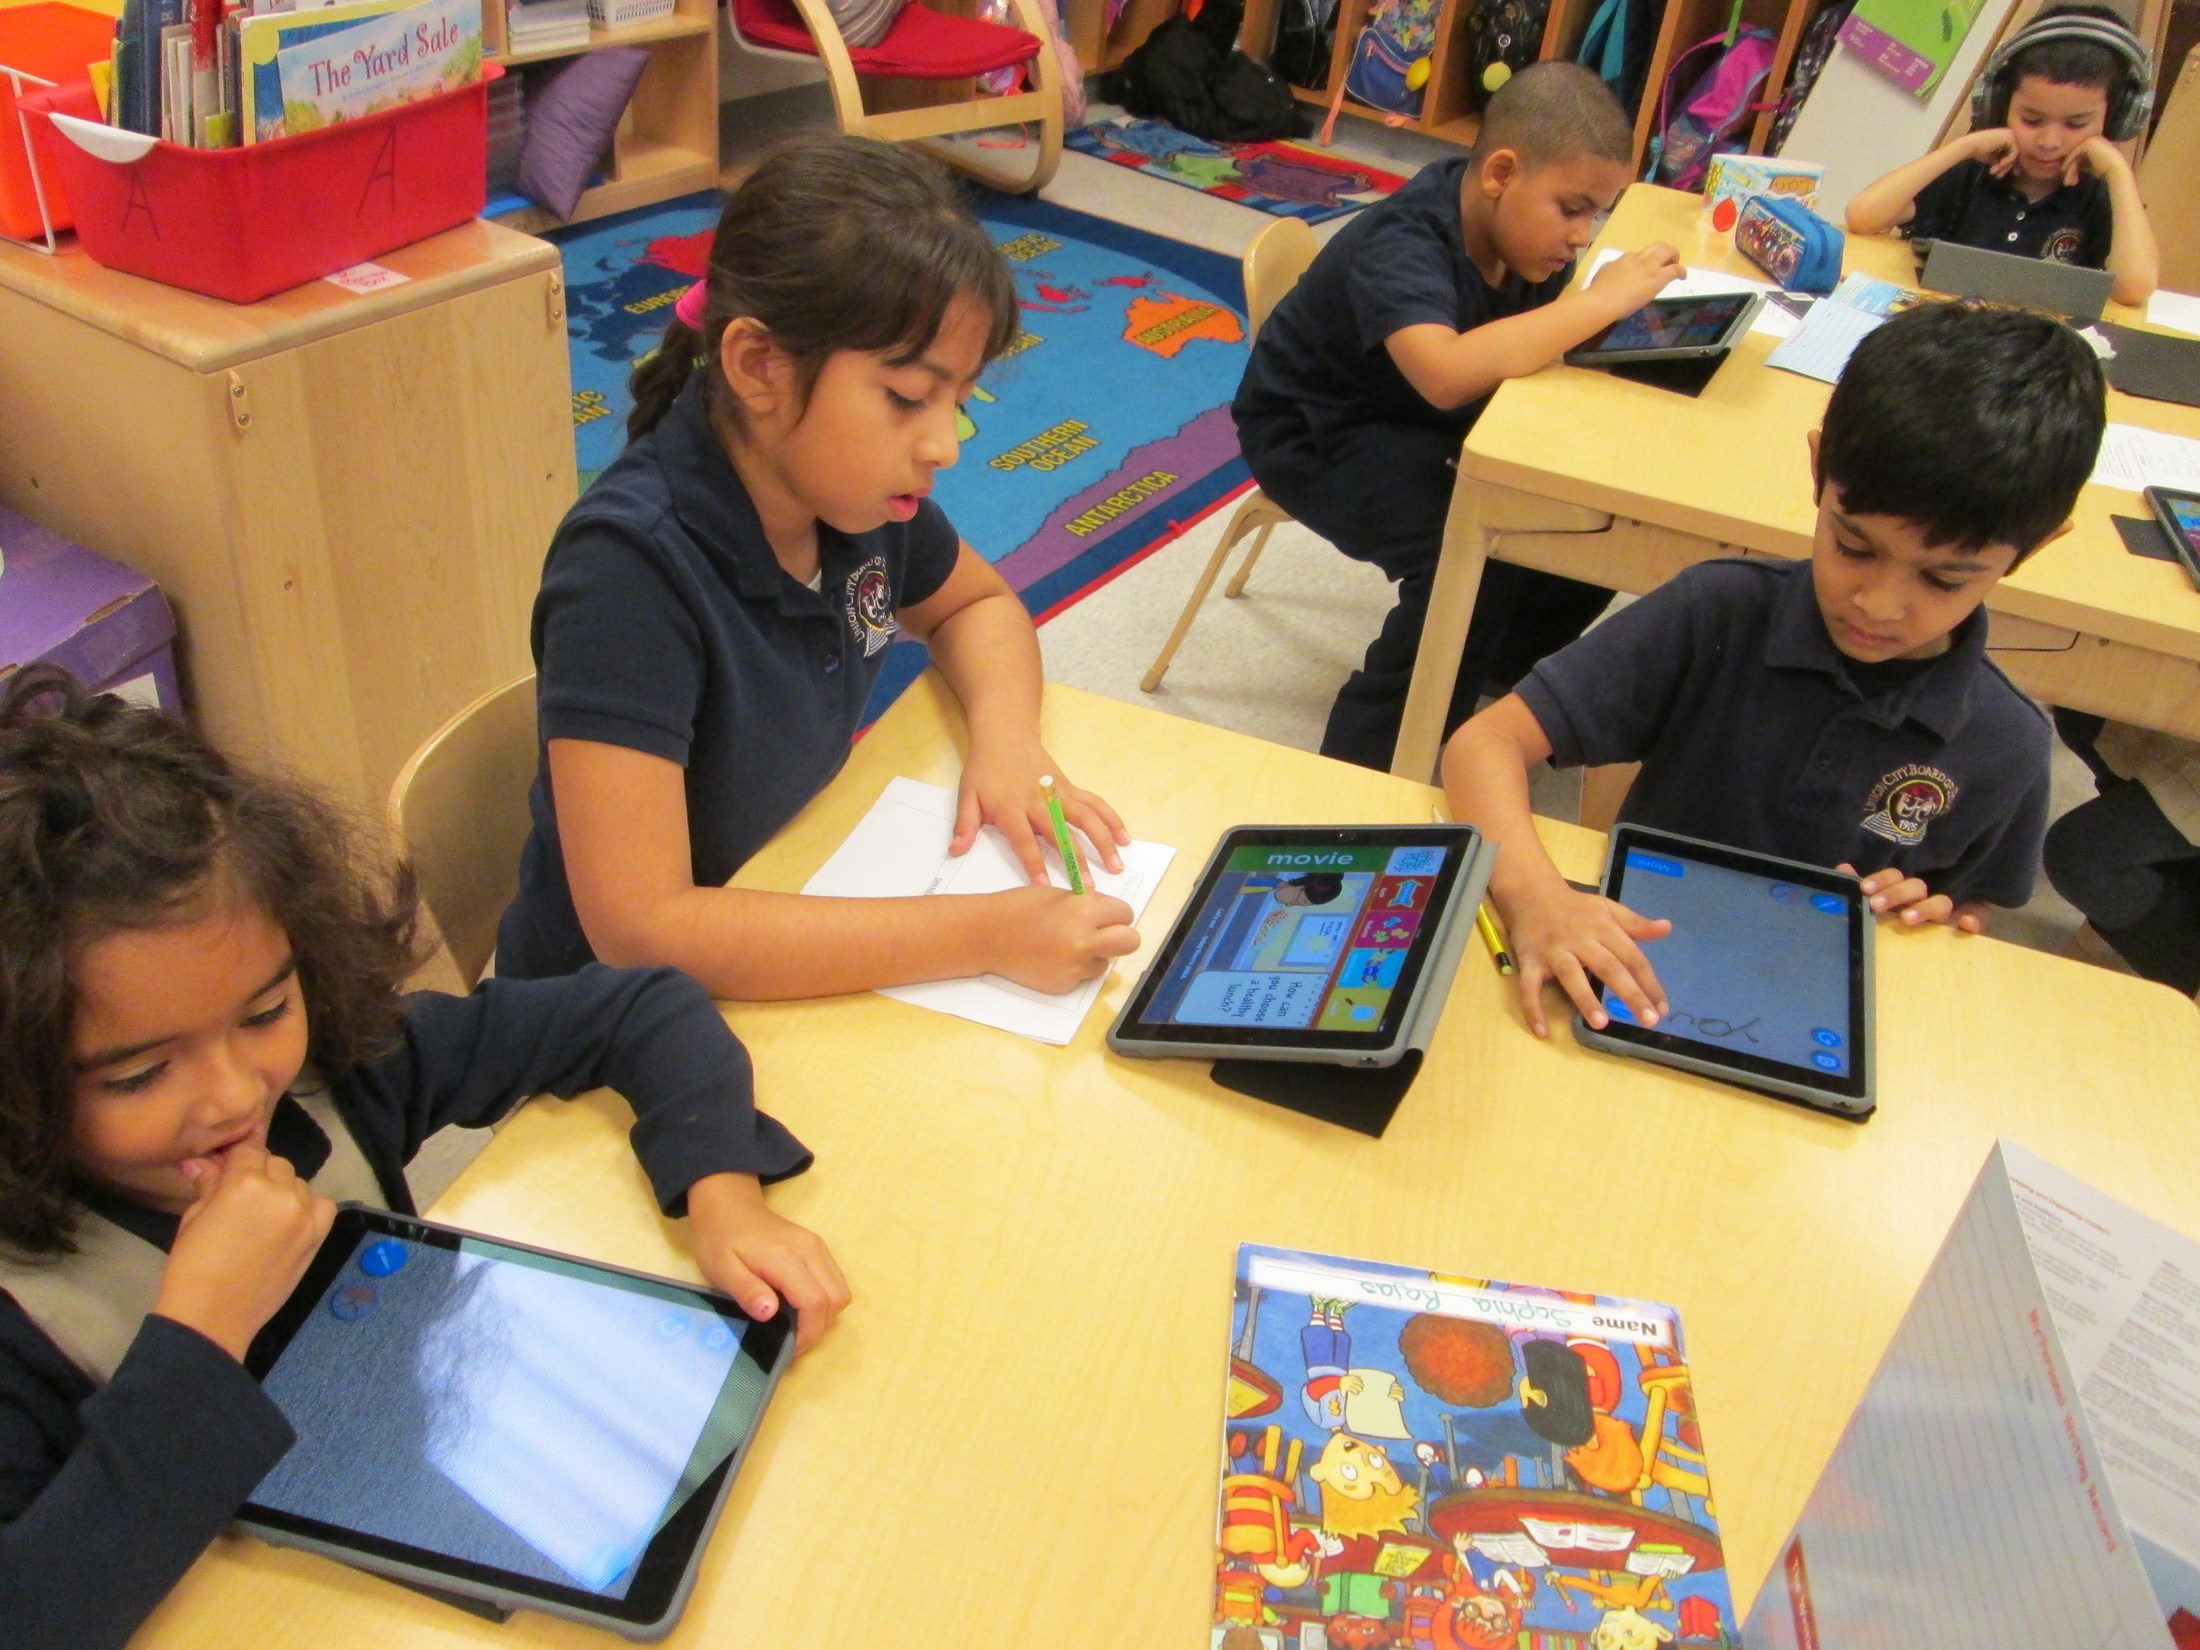 group working with their ipads to solve problems